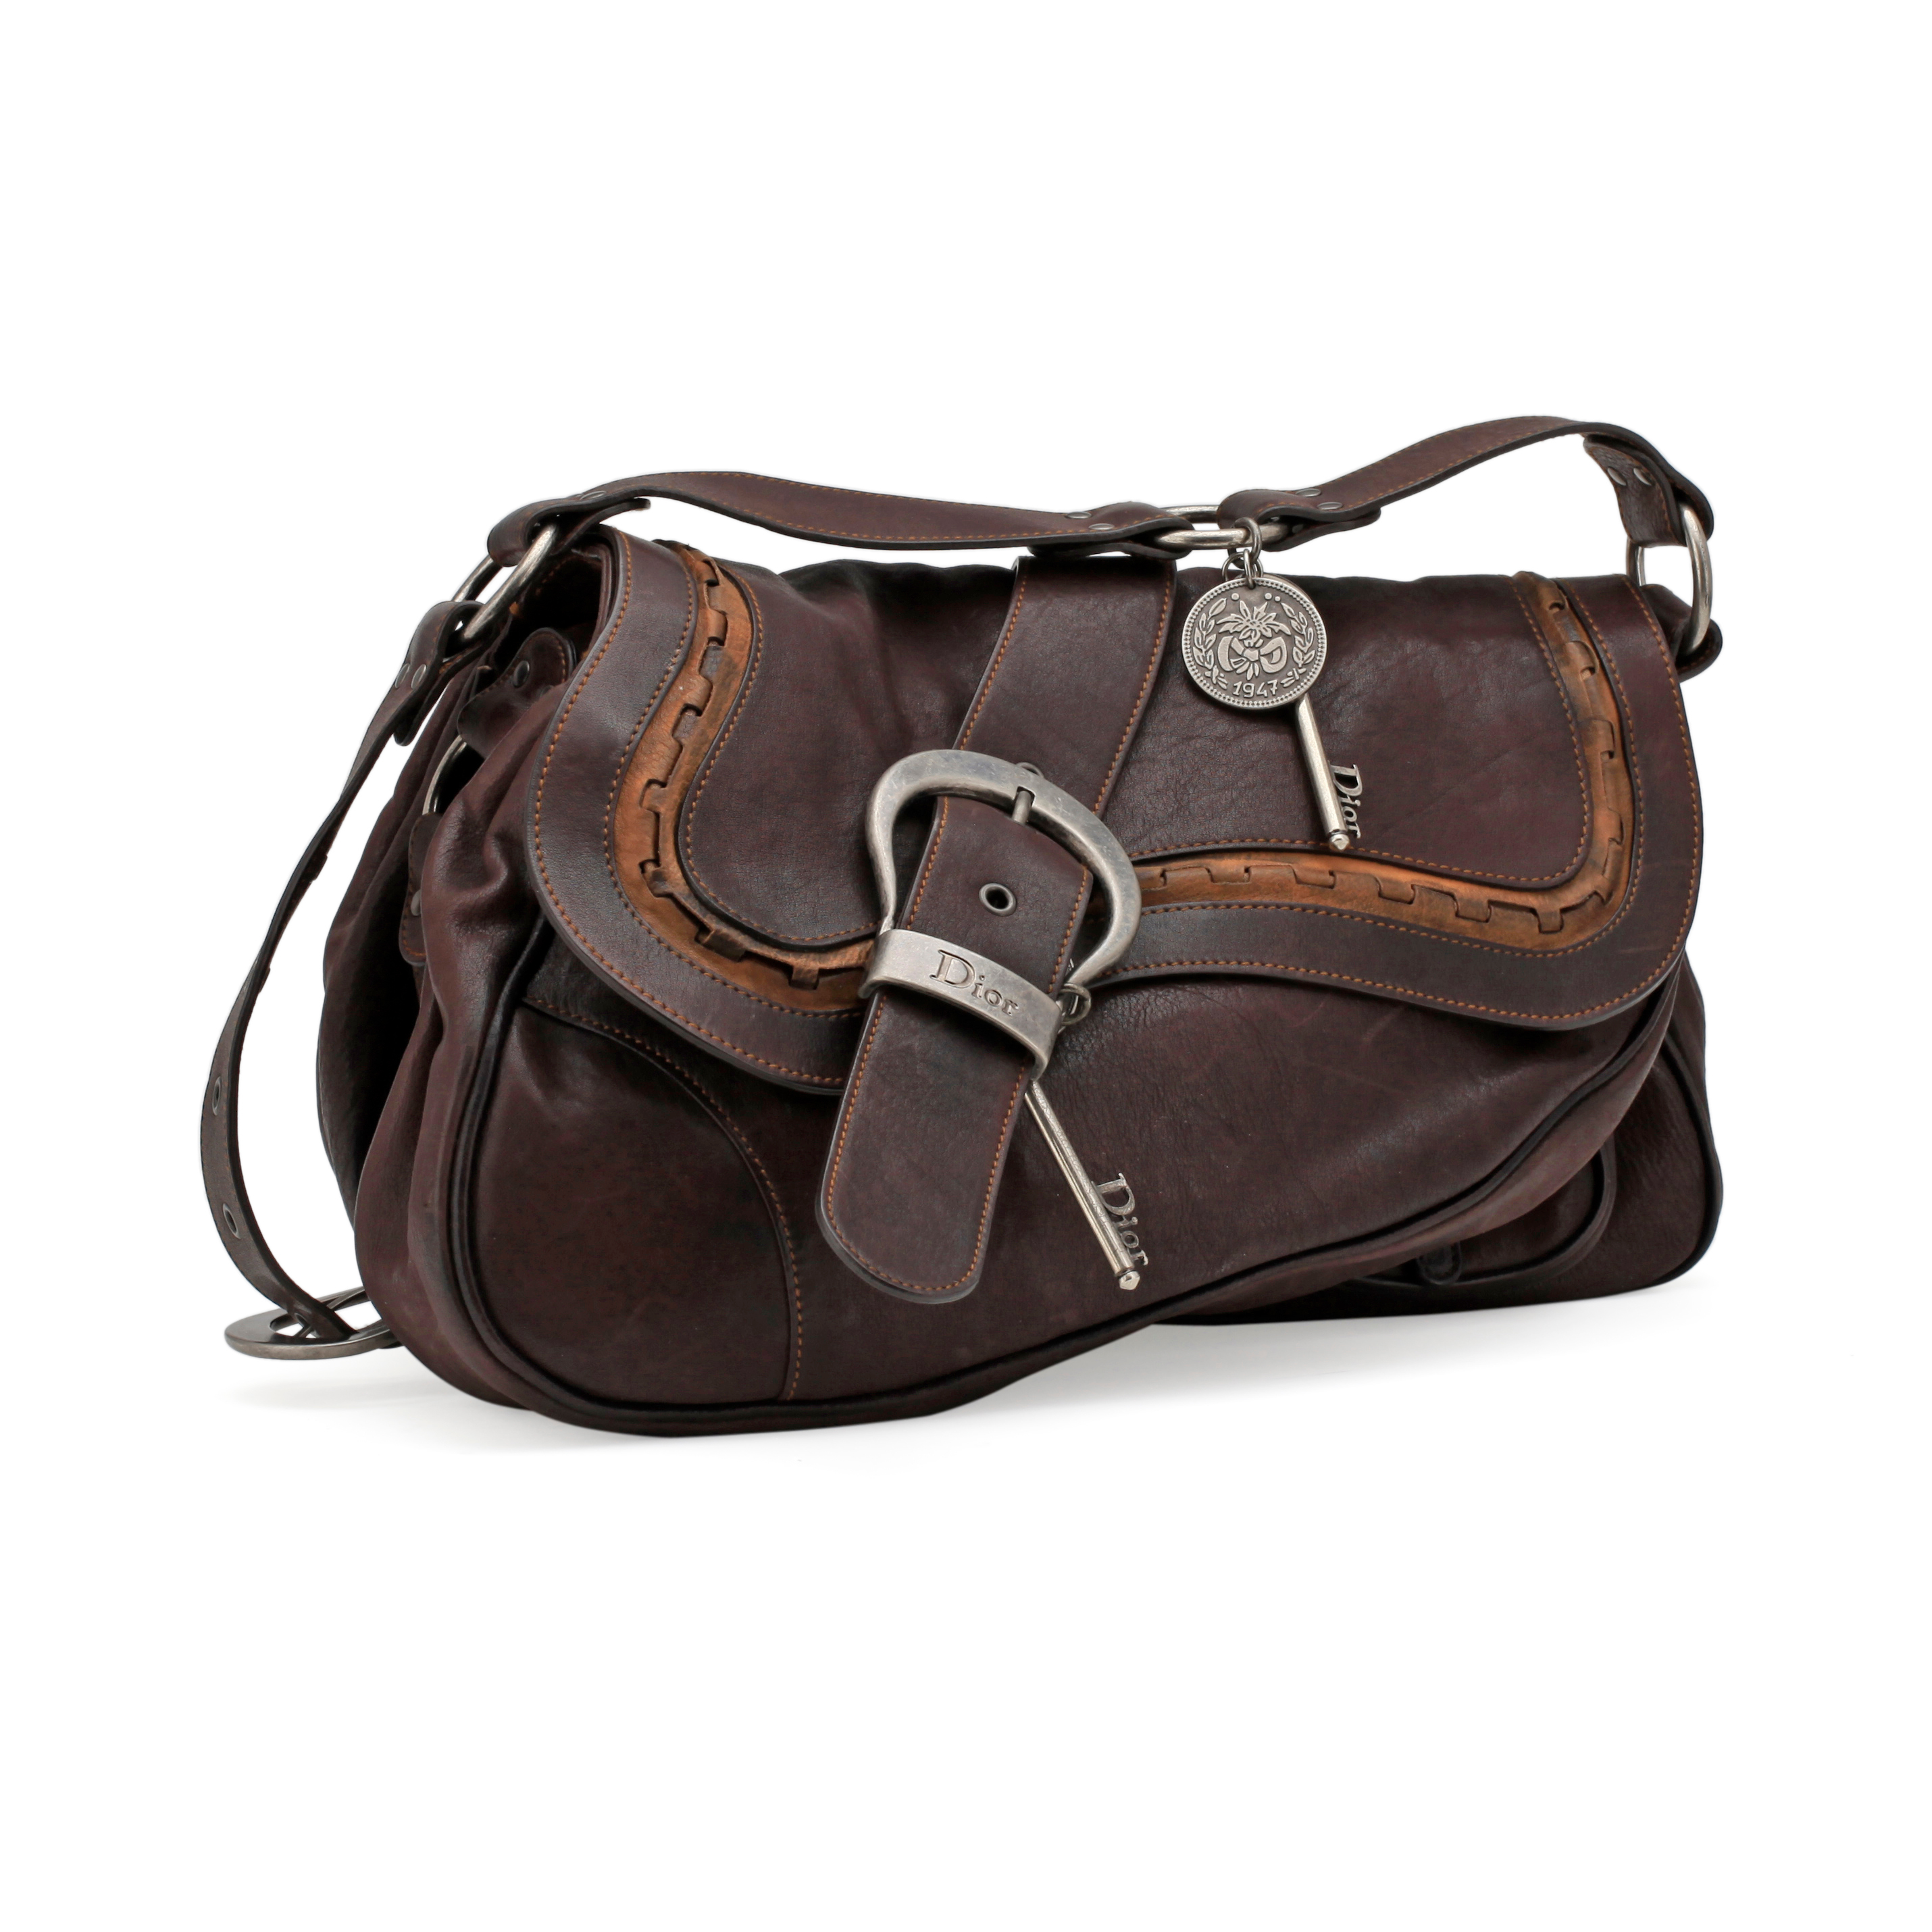 d7b06534142 CHRISTIAN DIOR, a brown leather